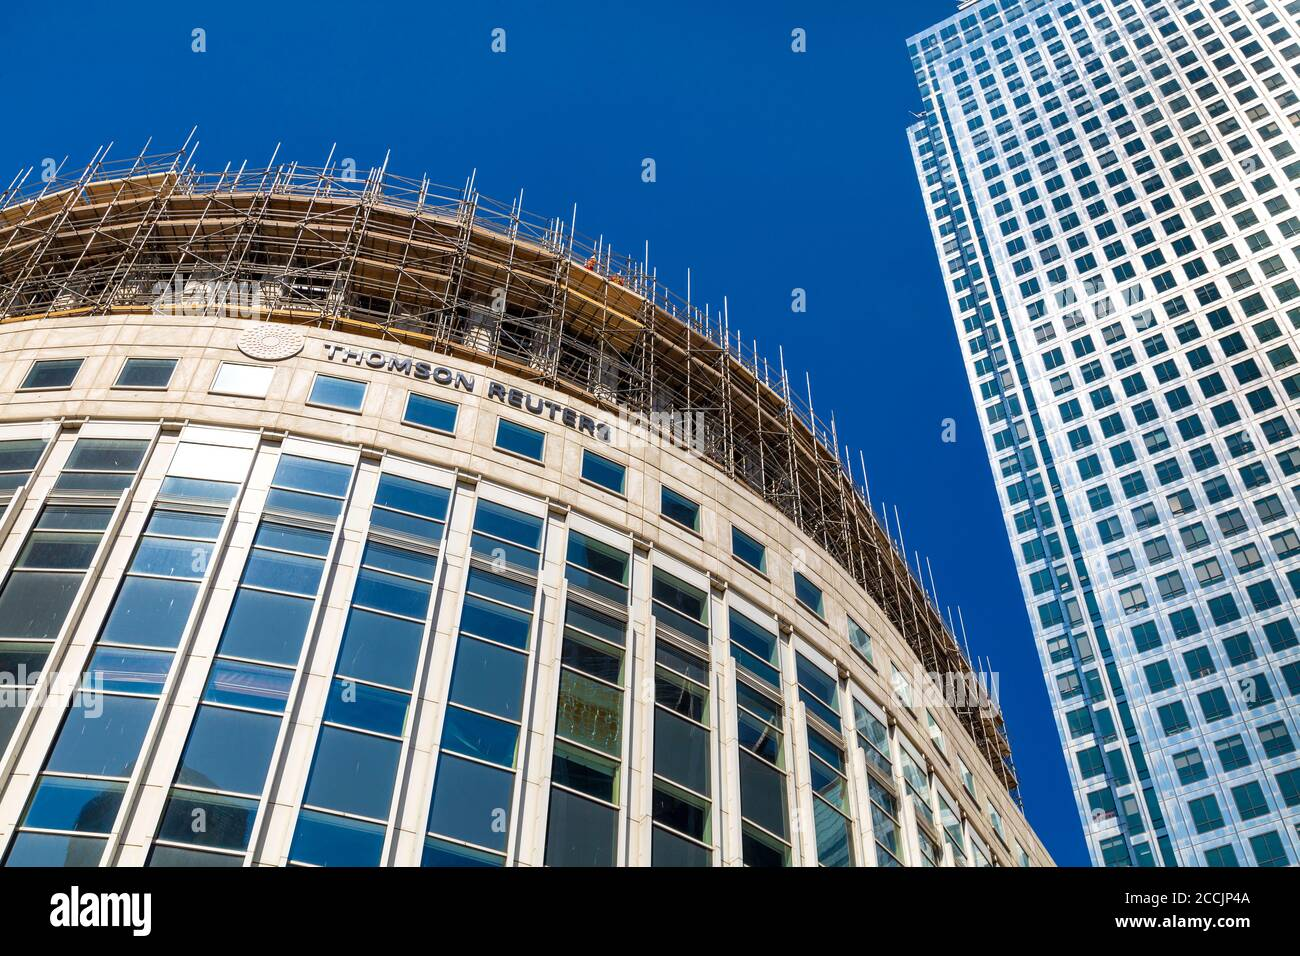 Thomson Reuters building getting renovated and One Canada Square on the right, Reuters Plaza, Canary Wharf, London, UK Stock Photo